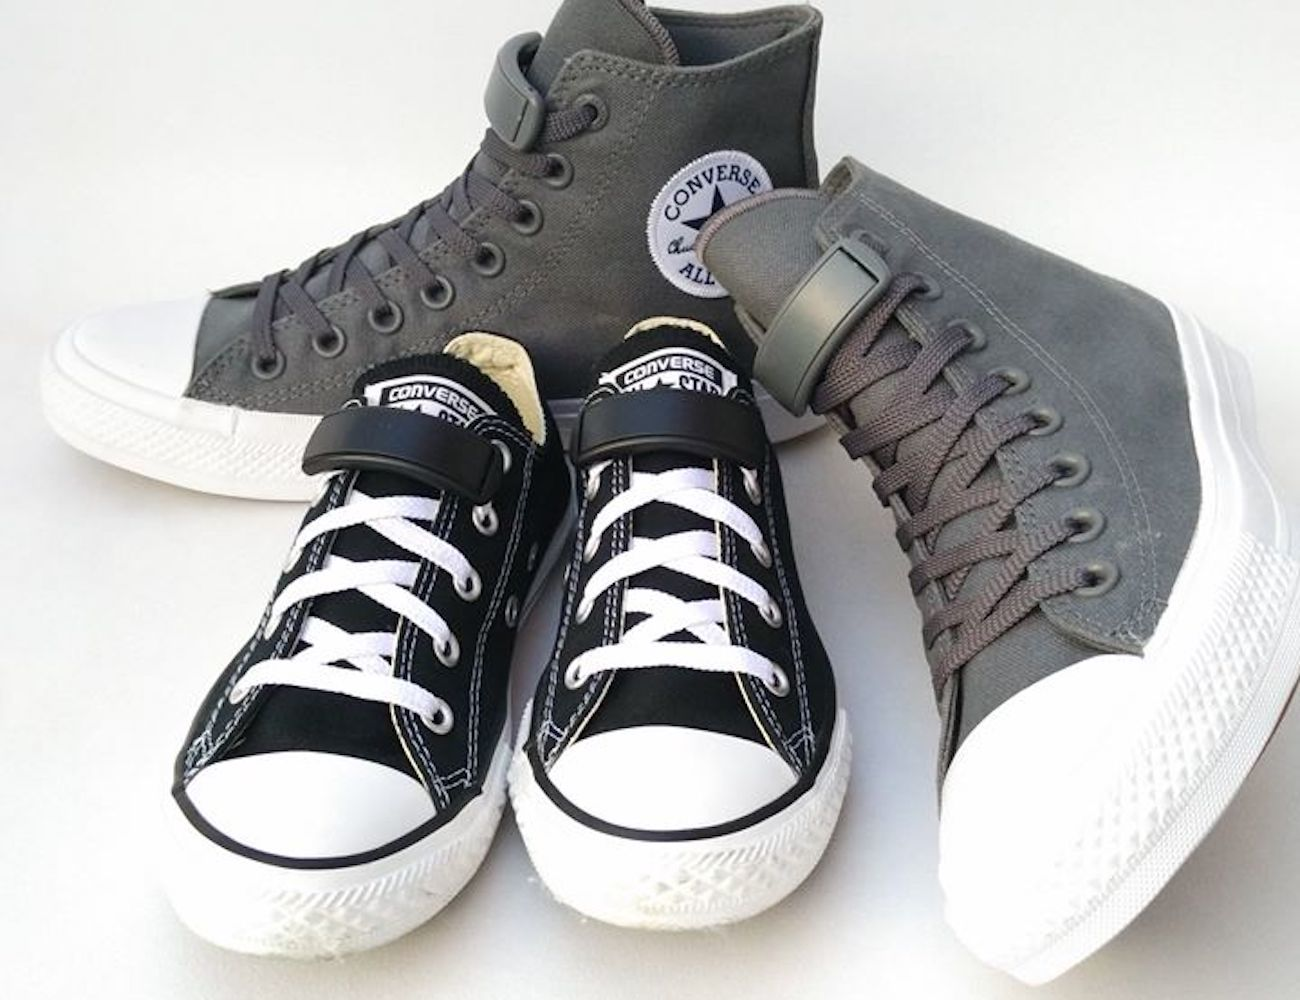 ClipIts Shoelace Tidy System